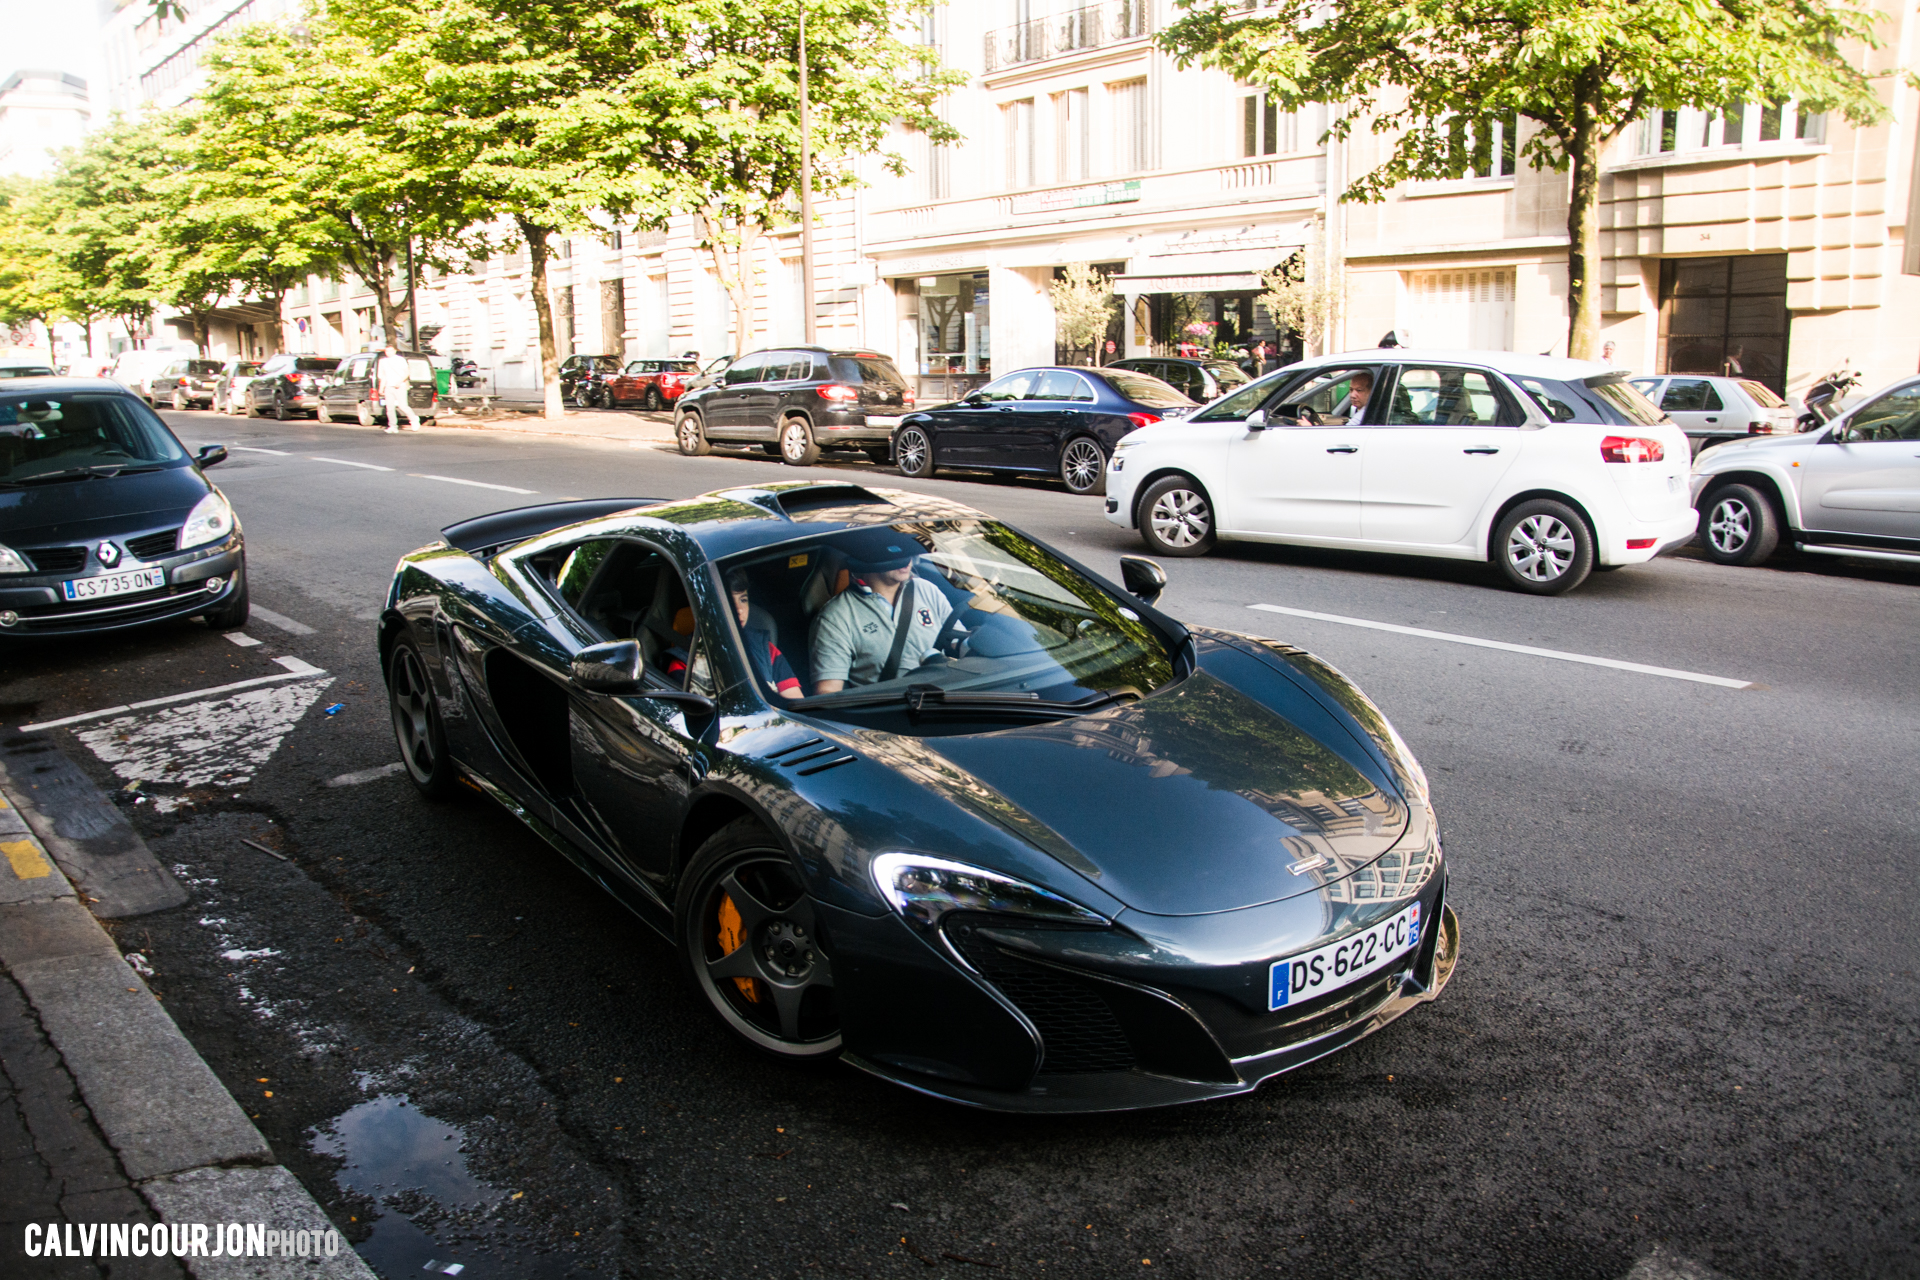 McLaren 650S - Edition Le Mans by MSO - 2015 - photo Calvin Courjon